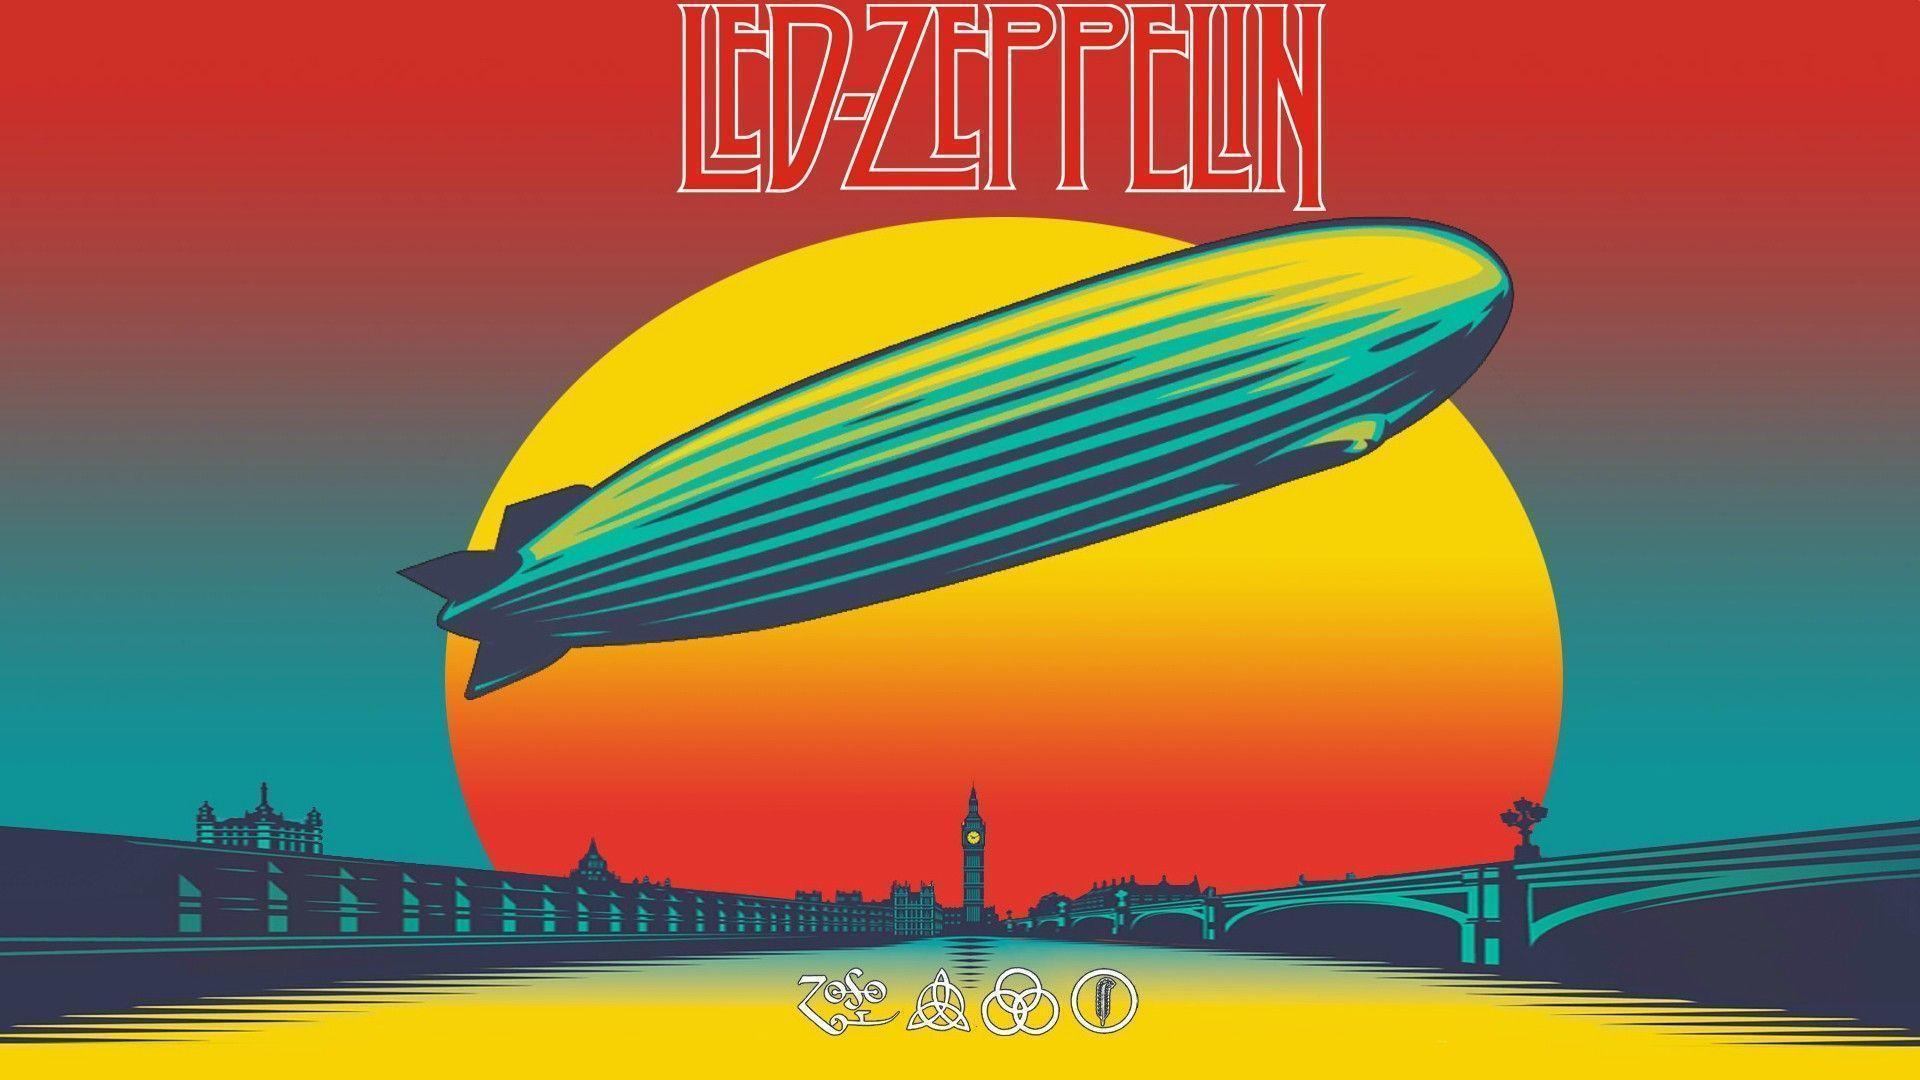 led zeppelin wallpaper - photo #12